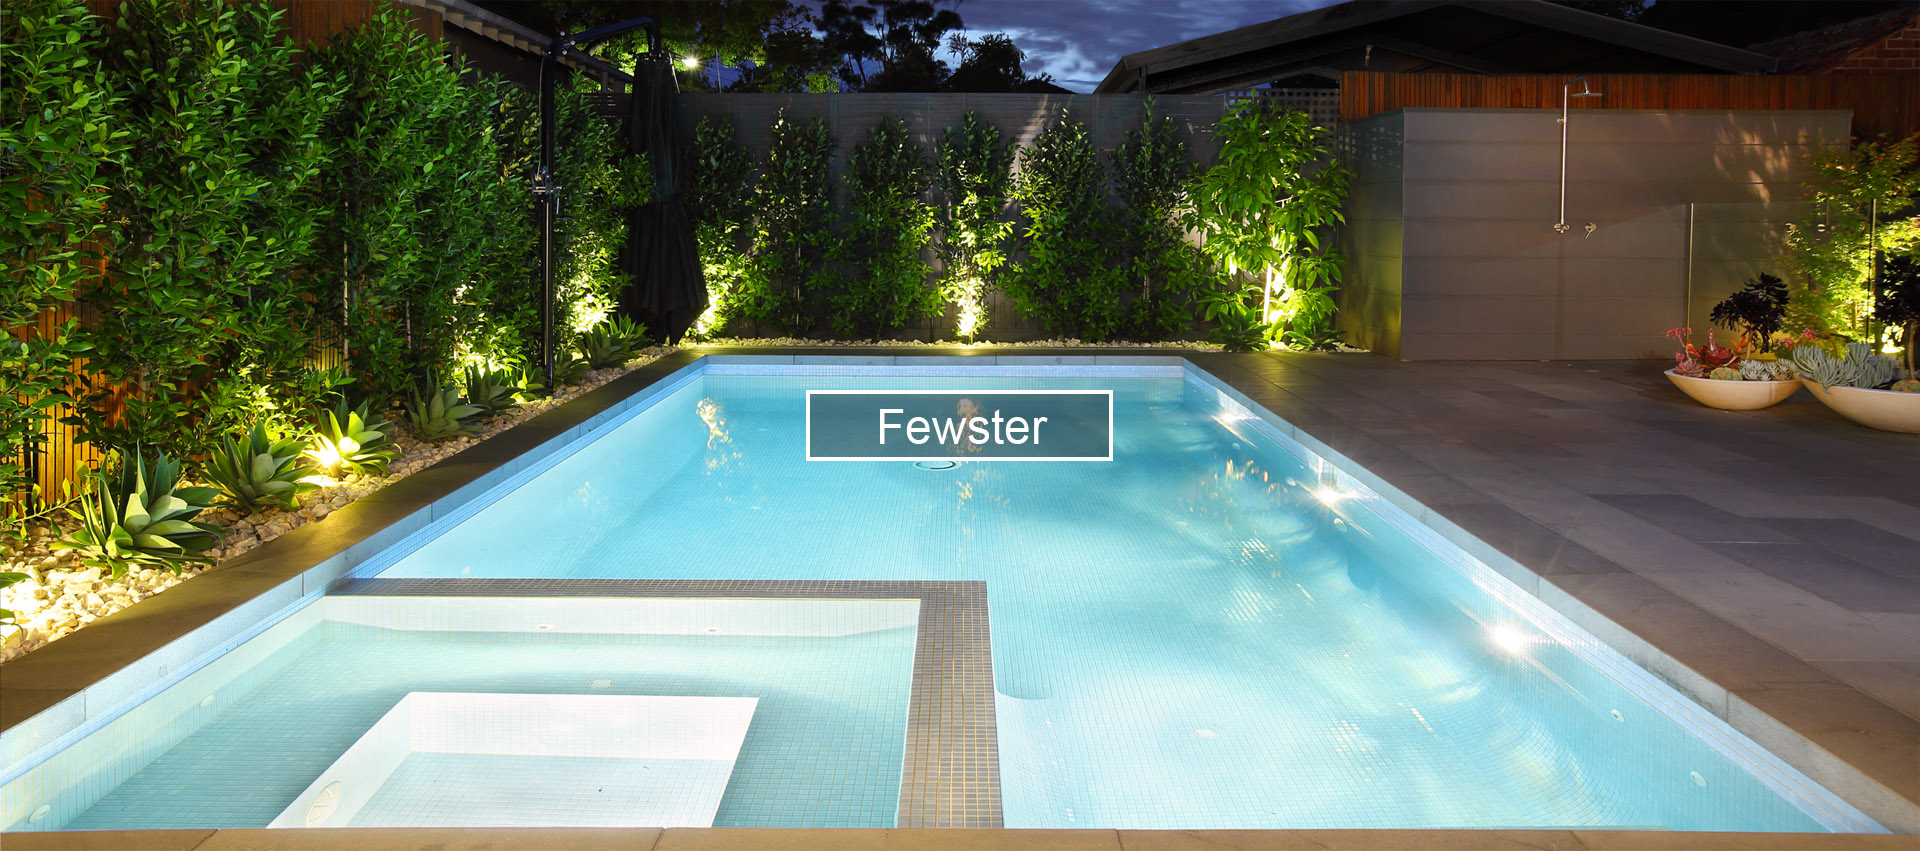 Fewster - Kiama Pools Swimming Pool Project